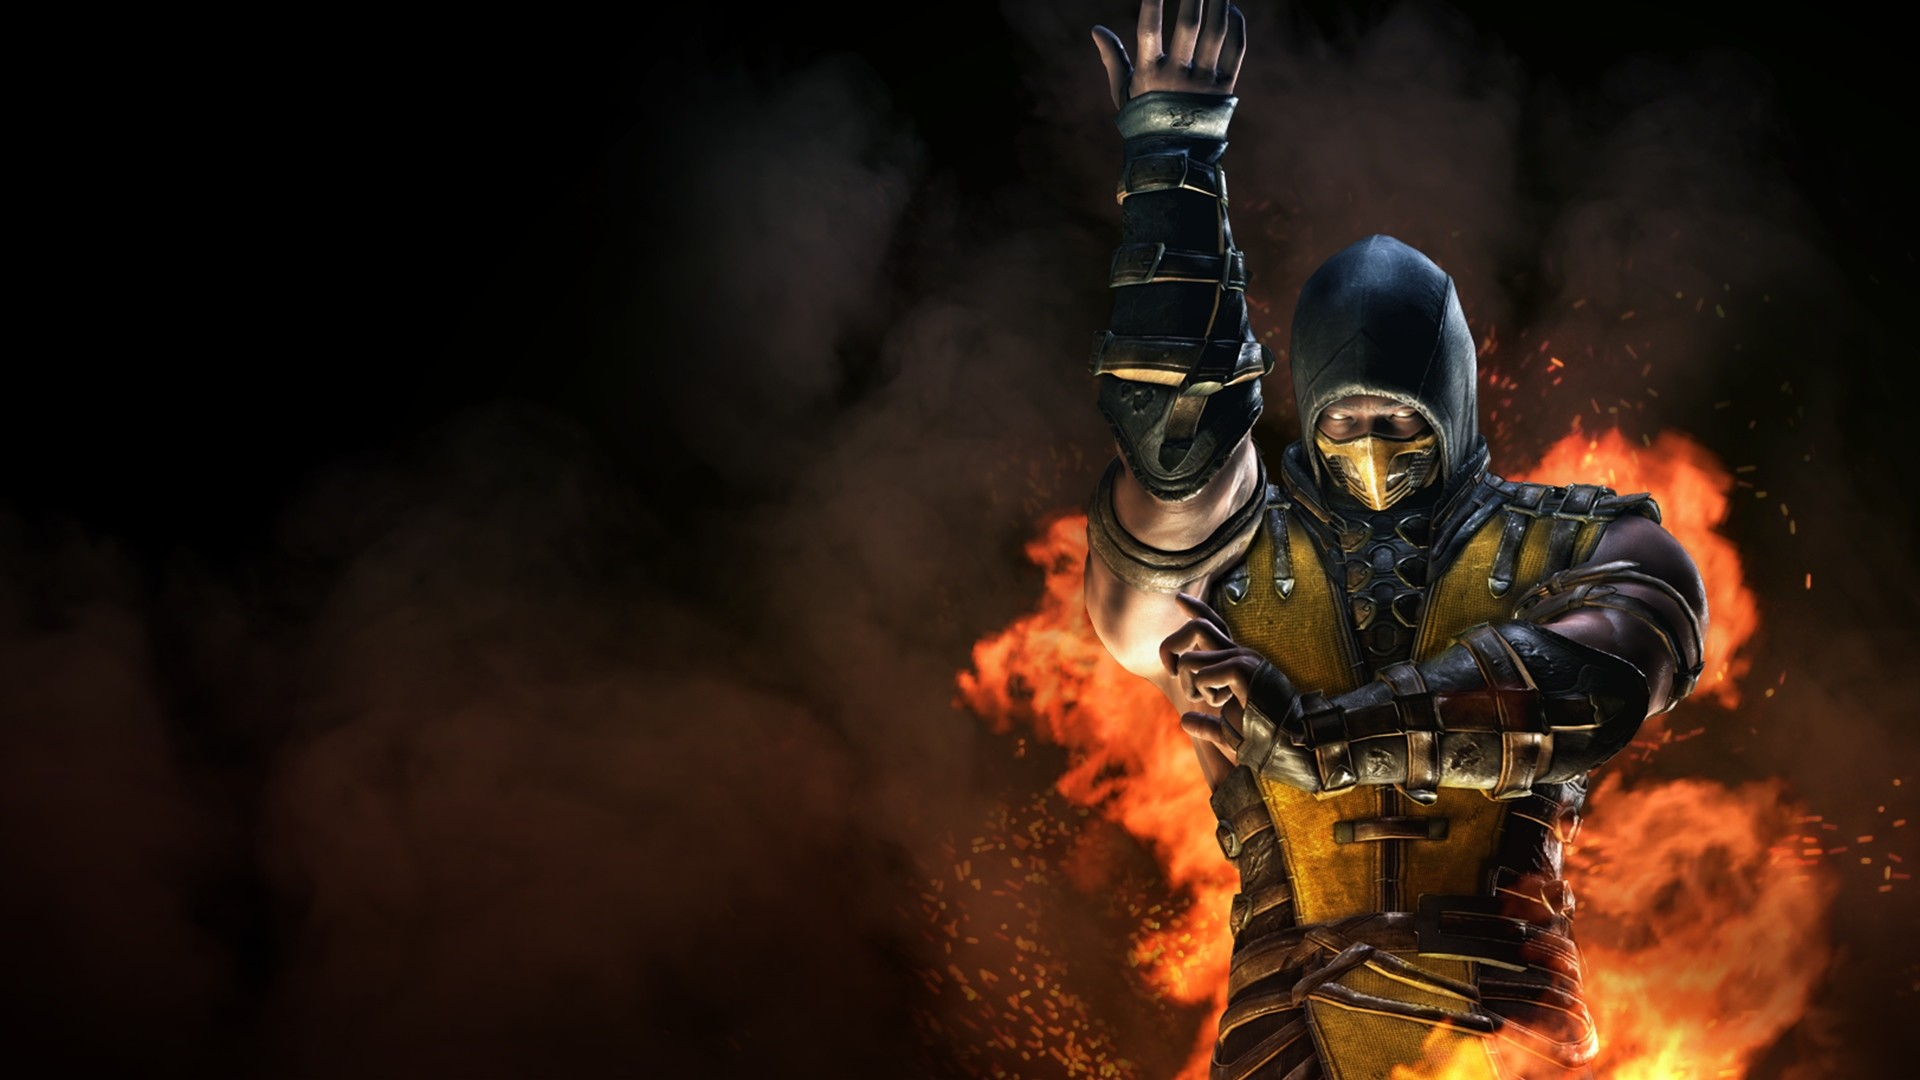 Mortal Kombat X Wallpaper Hd 72 Images